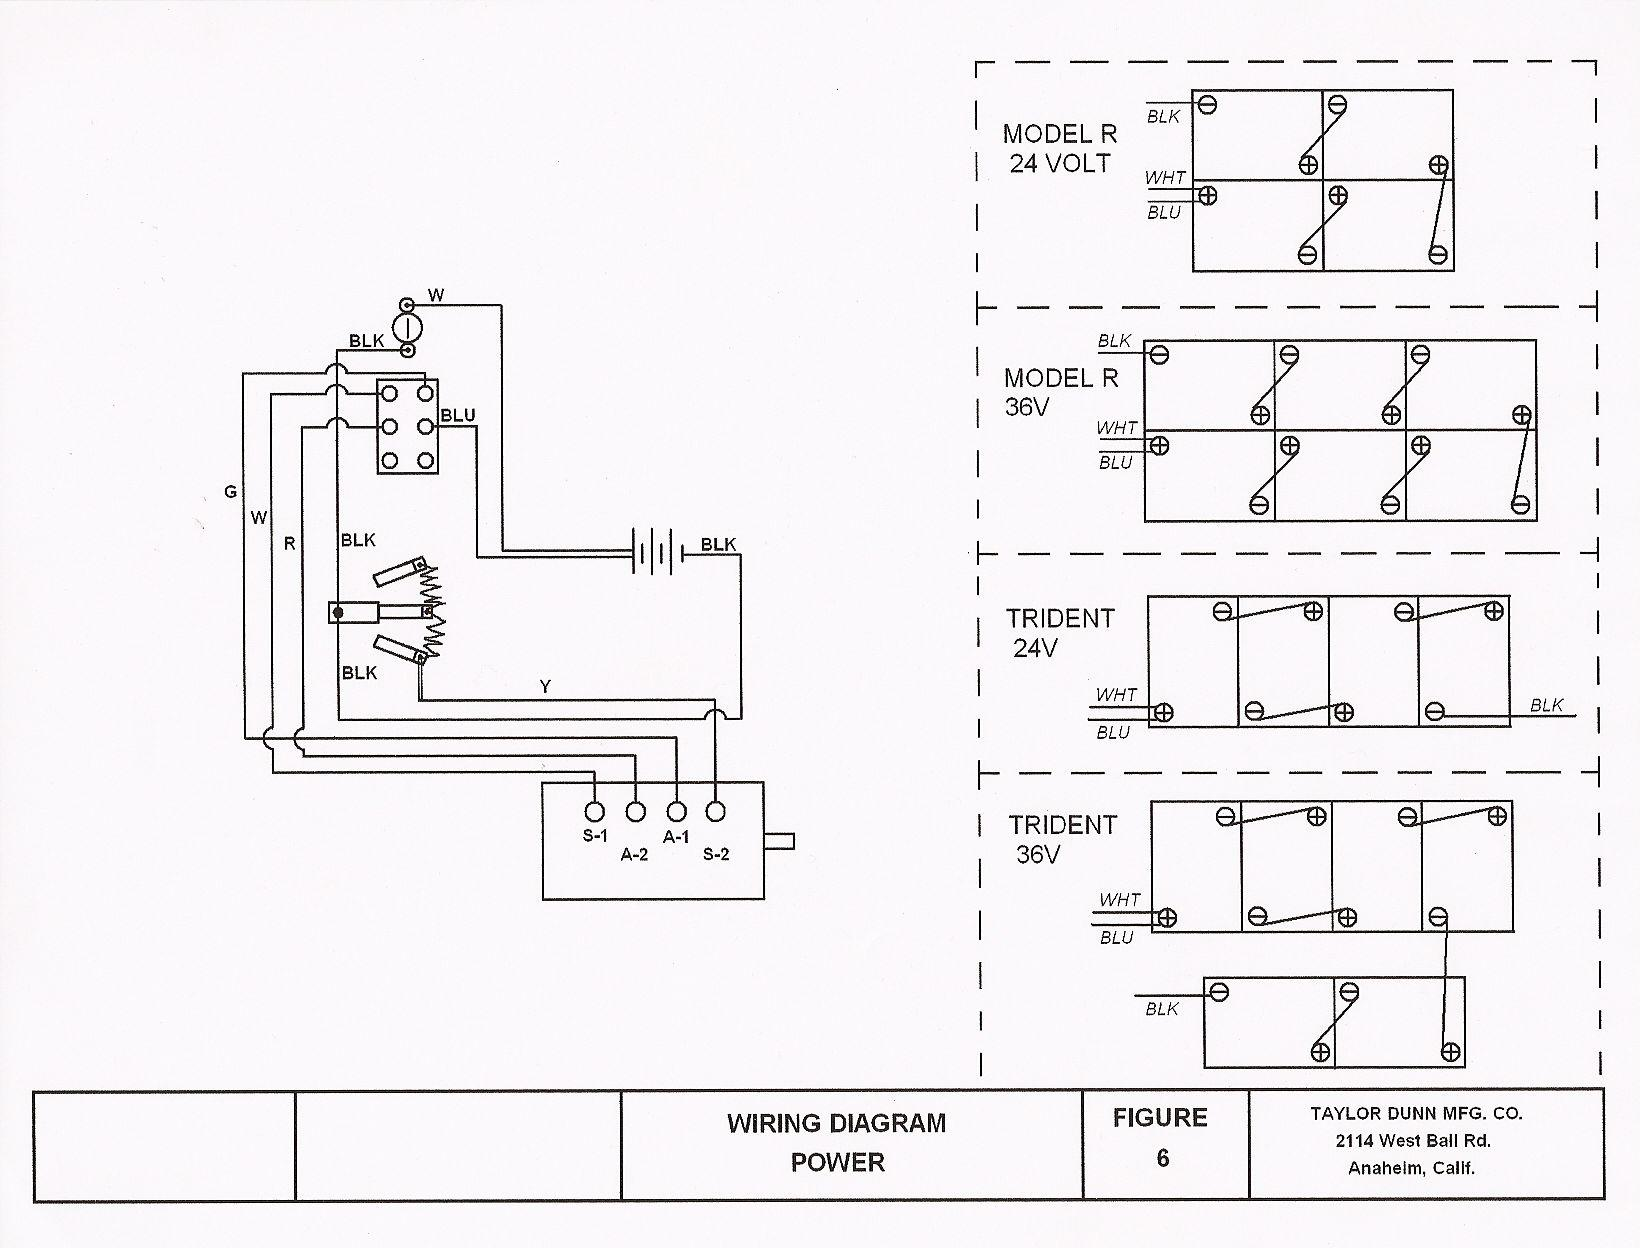 trident02 taylor dunn wiring diagram wiring diagram and schematic design trident gas control panel wiring diagram at gsmportal.co